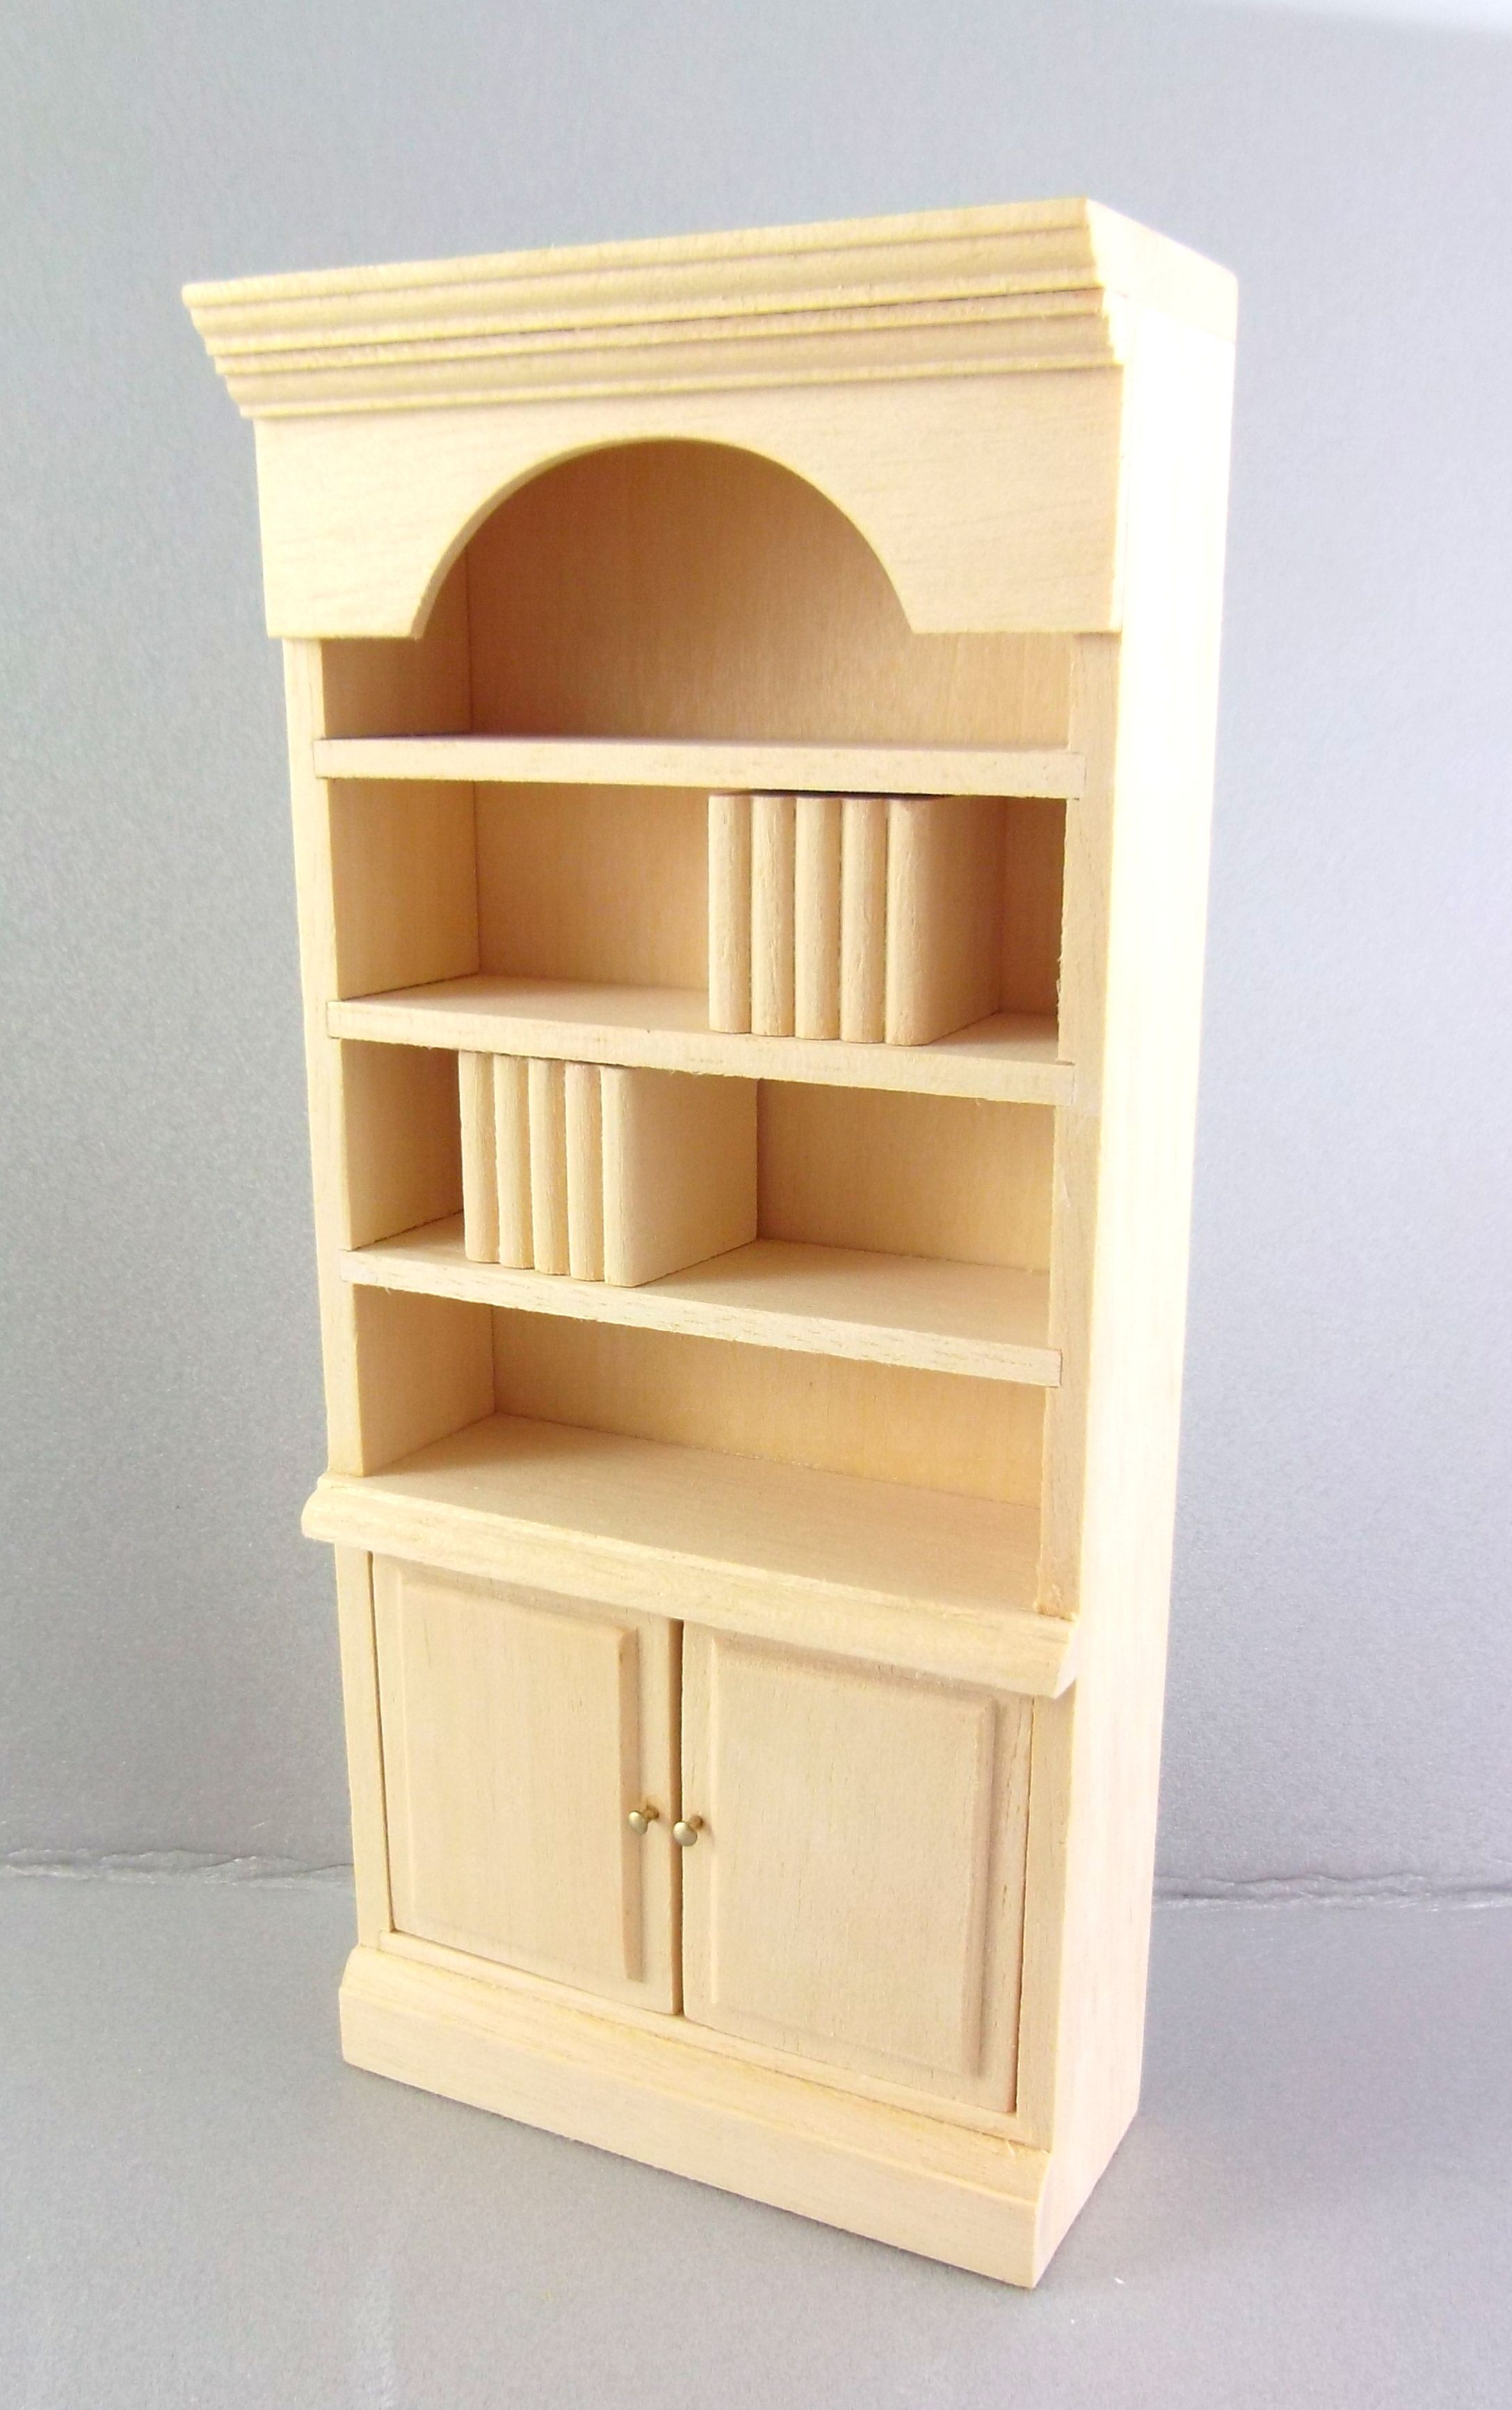 Dolls House Miniature 1 12 Unfinished Furniture Natural Wood Bookcase Shelf Unit